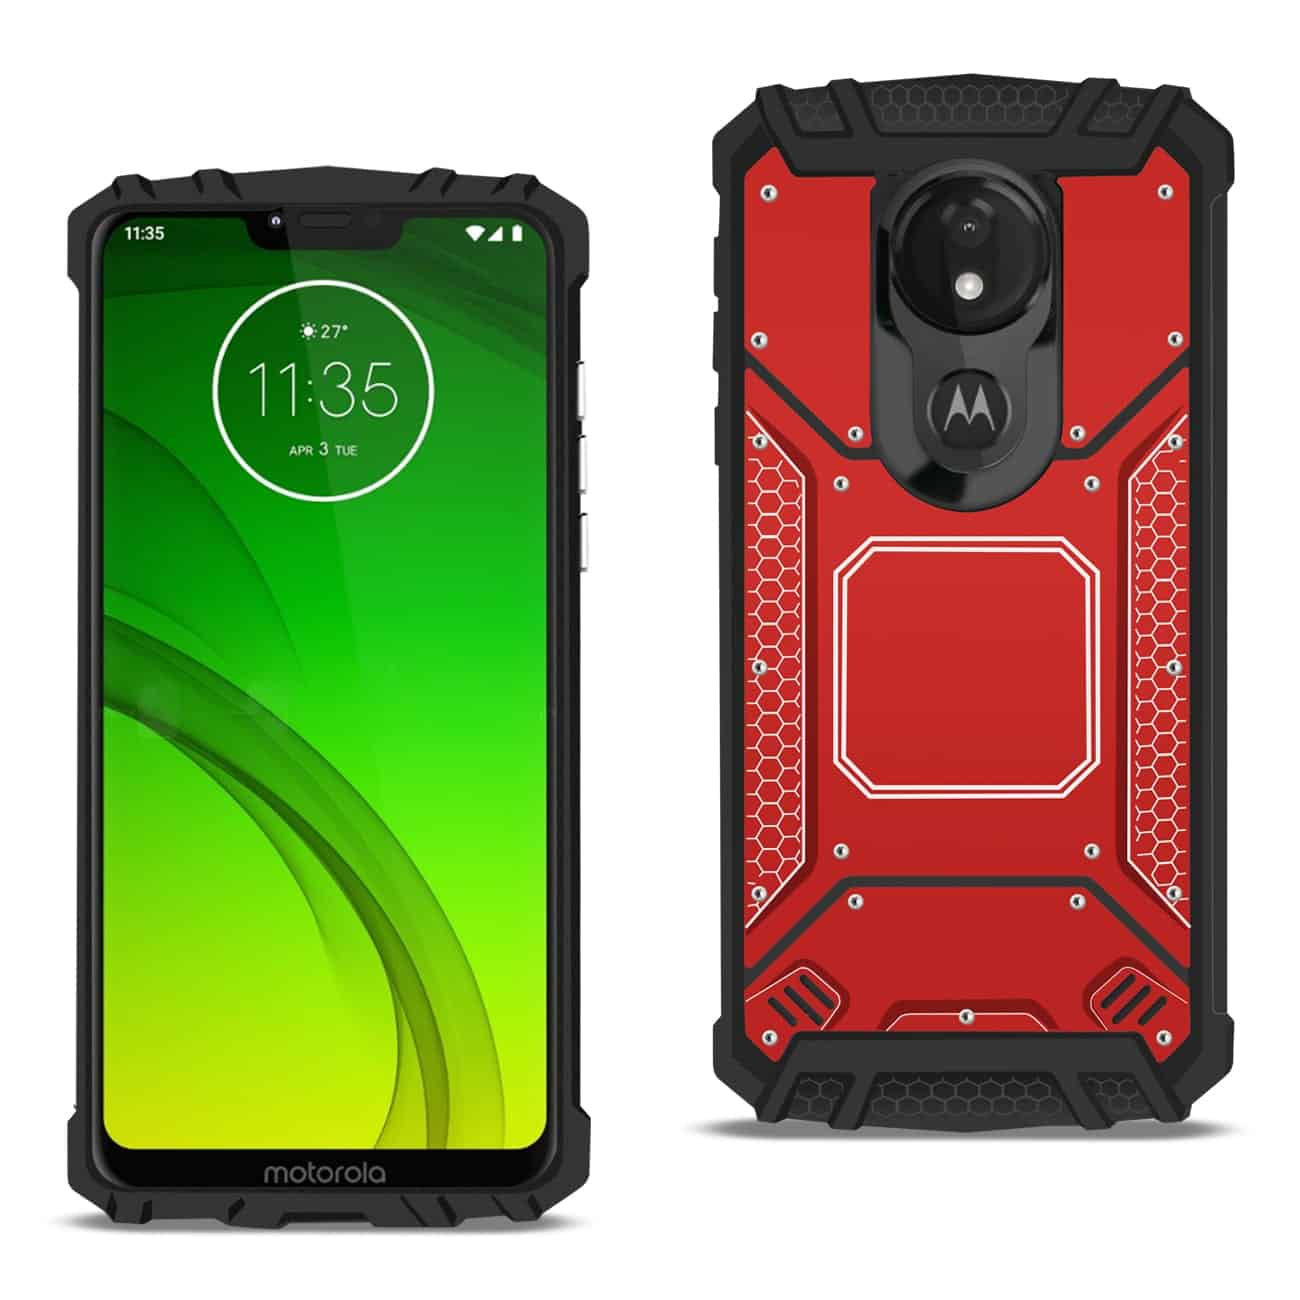 MOTOROLA MOTO G7 POWERMetallic Front Cover Case In Red